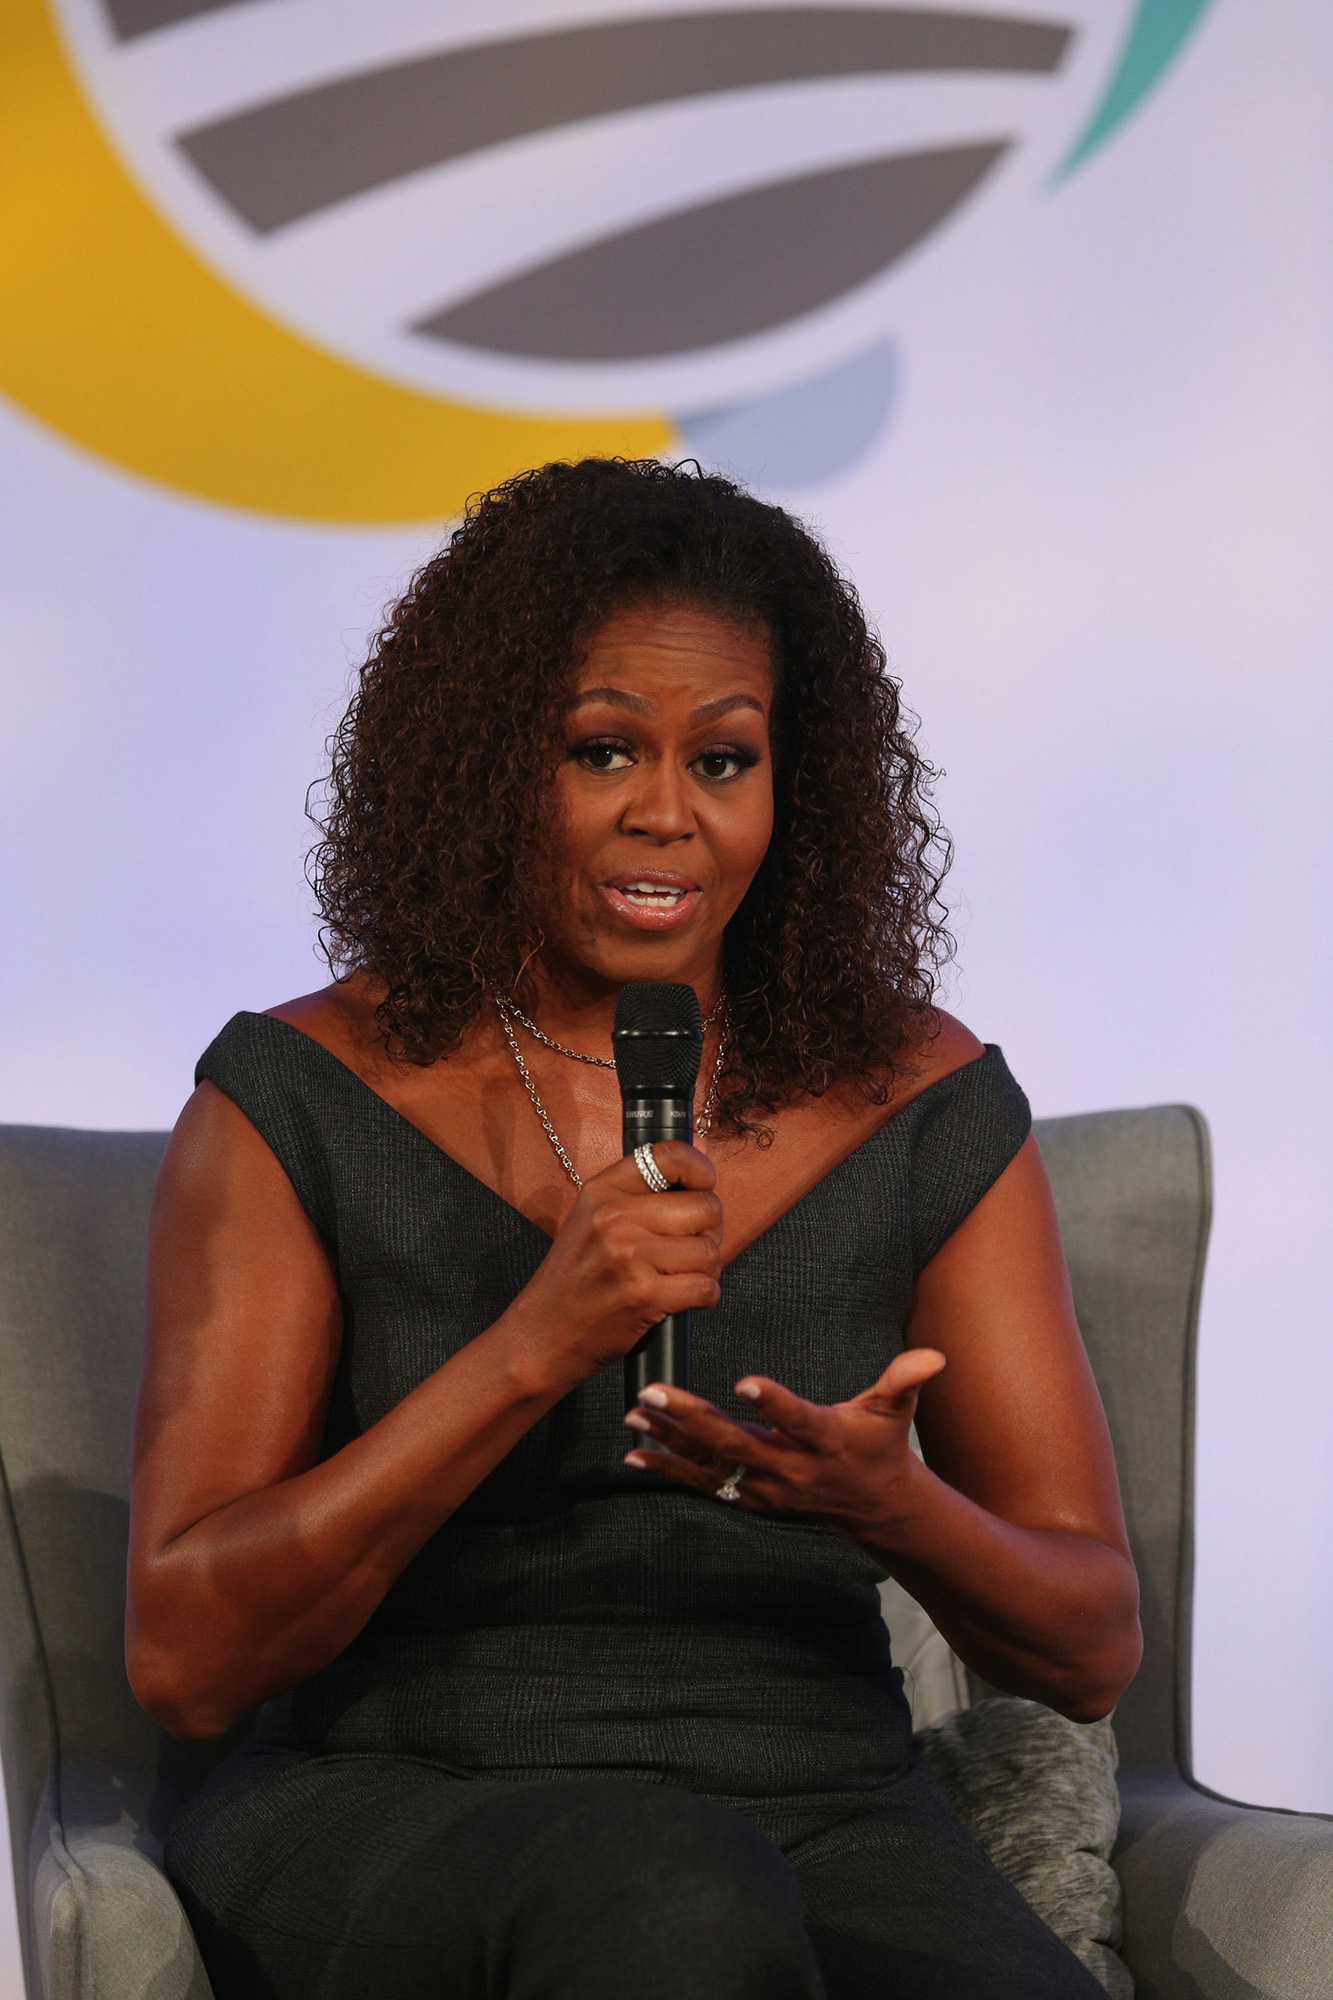 Michelle Obama has sage advice on how to cope with coronavirus anxiety